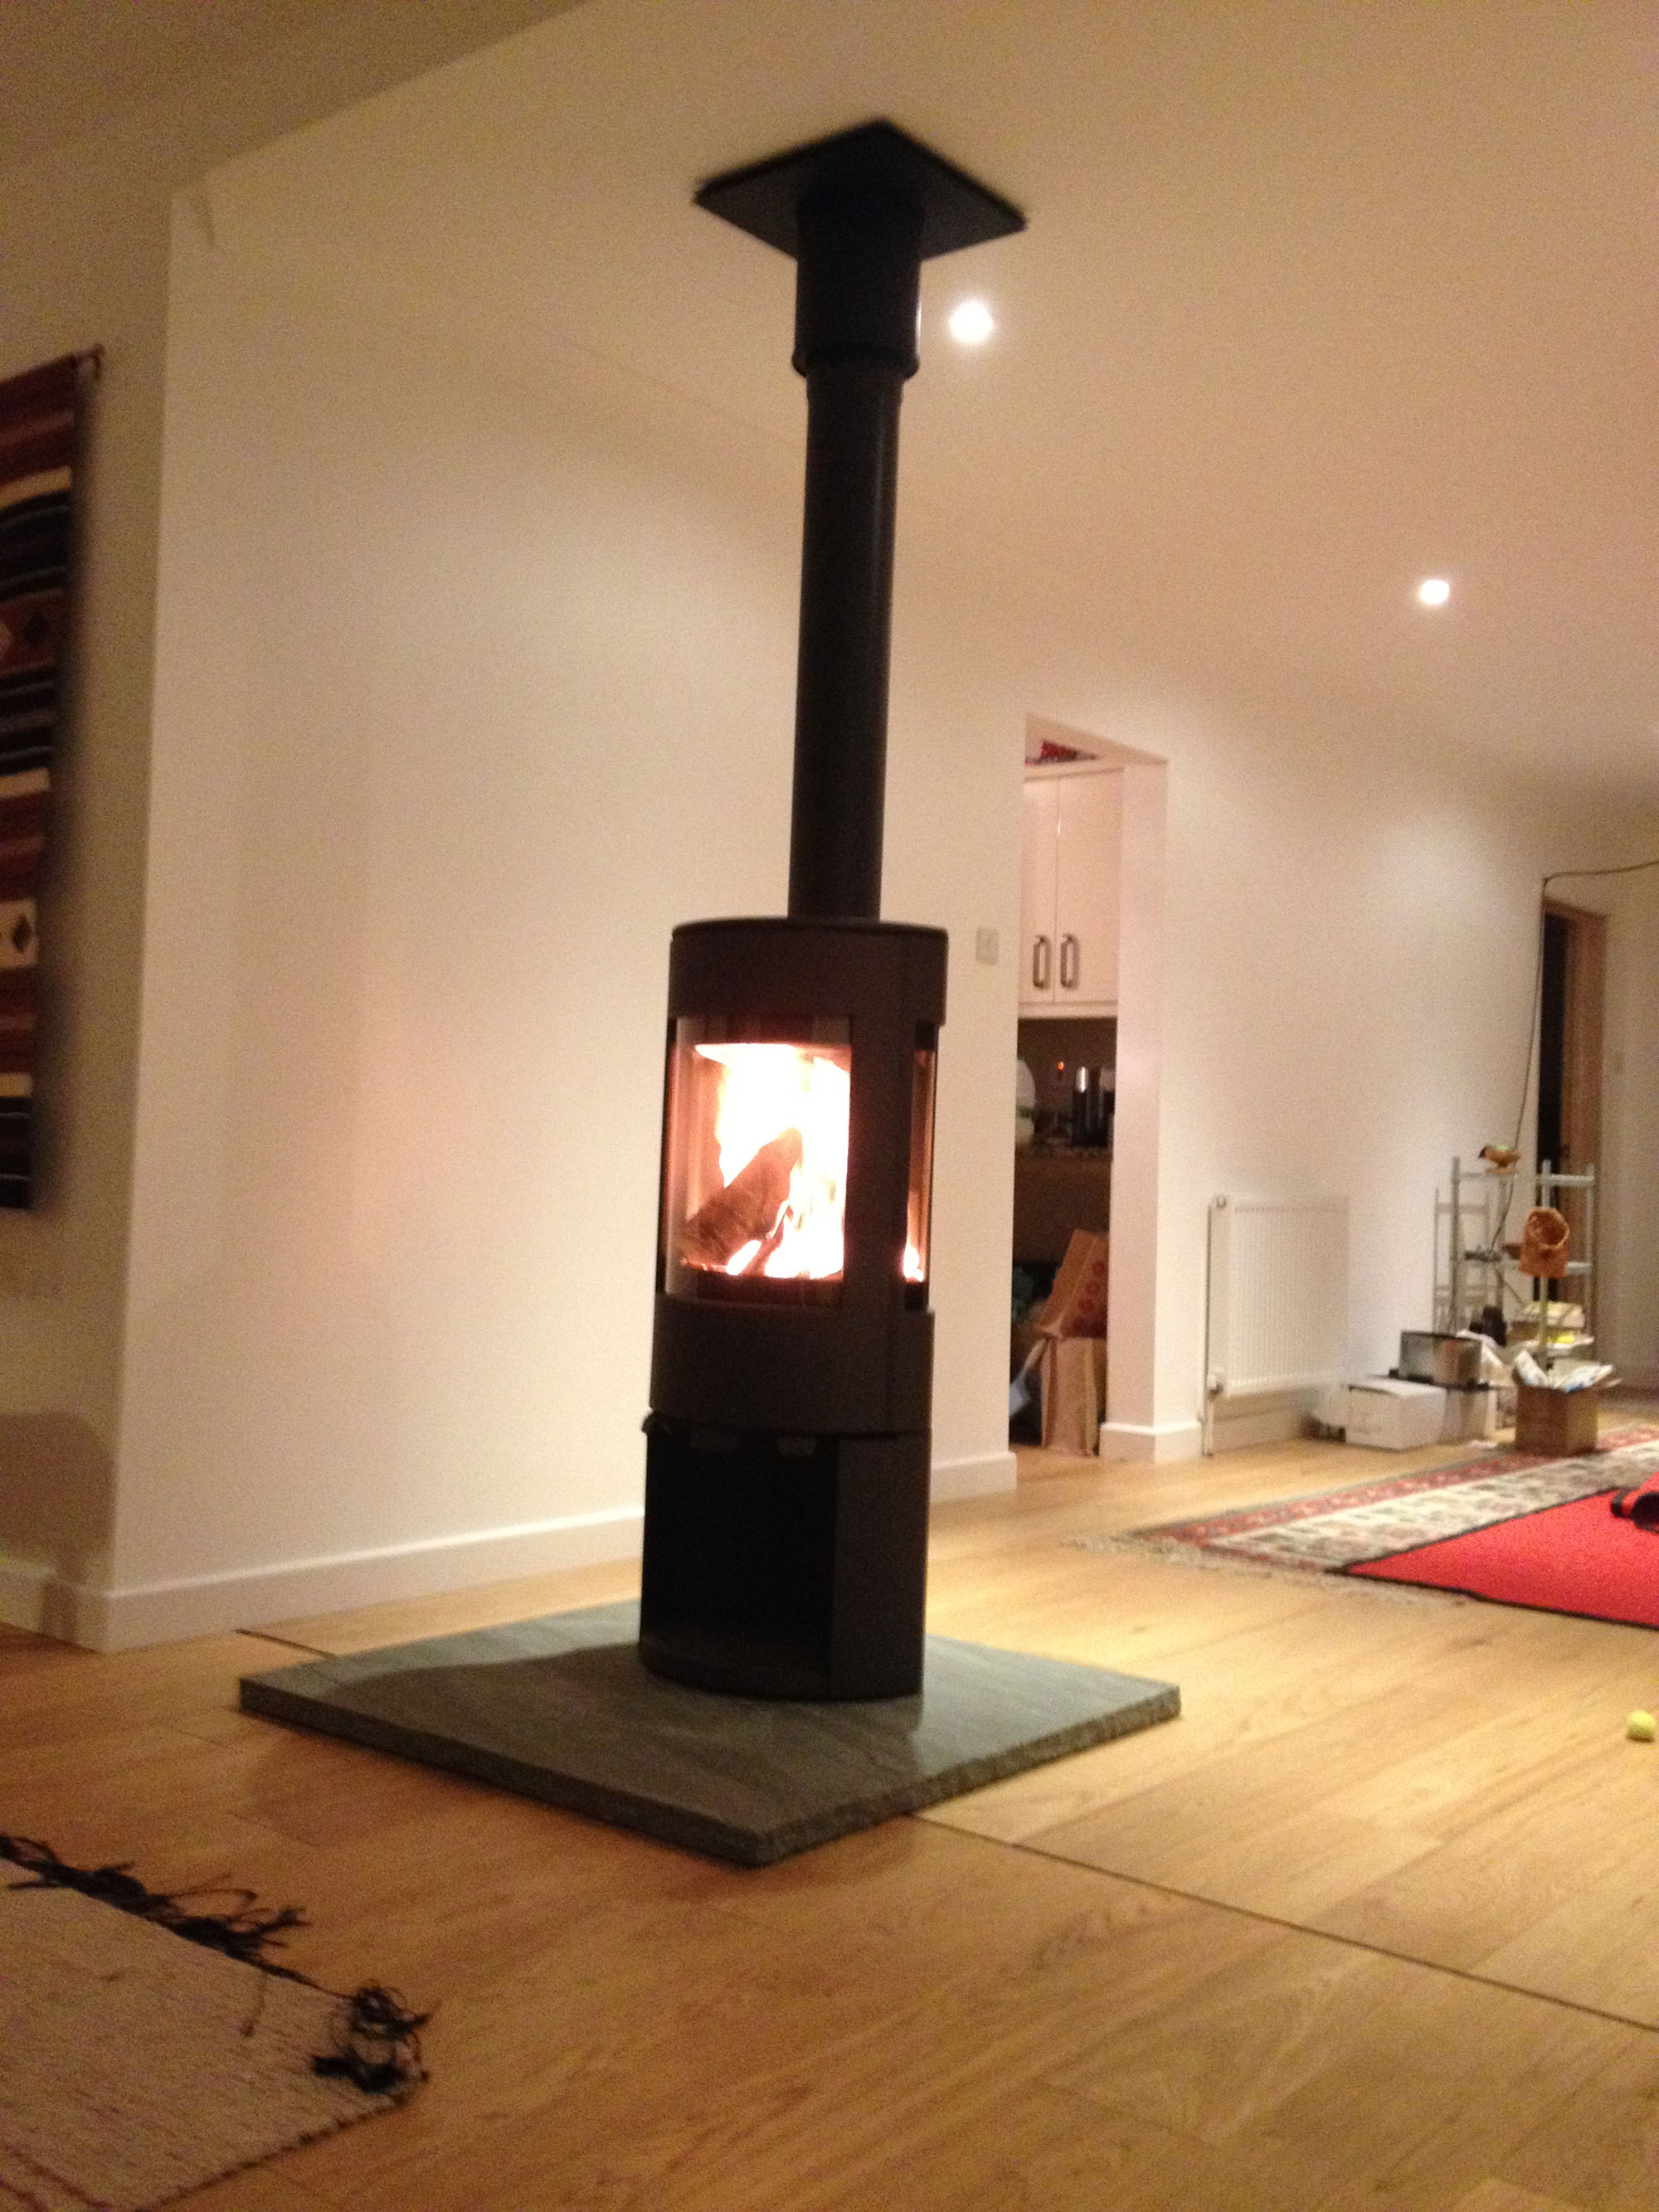 Dovre Free standing stove Woking Fire Bug Wood Burning Installation